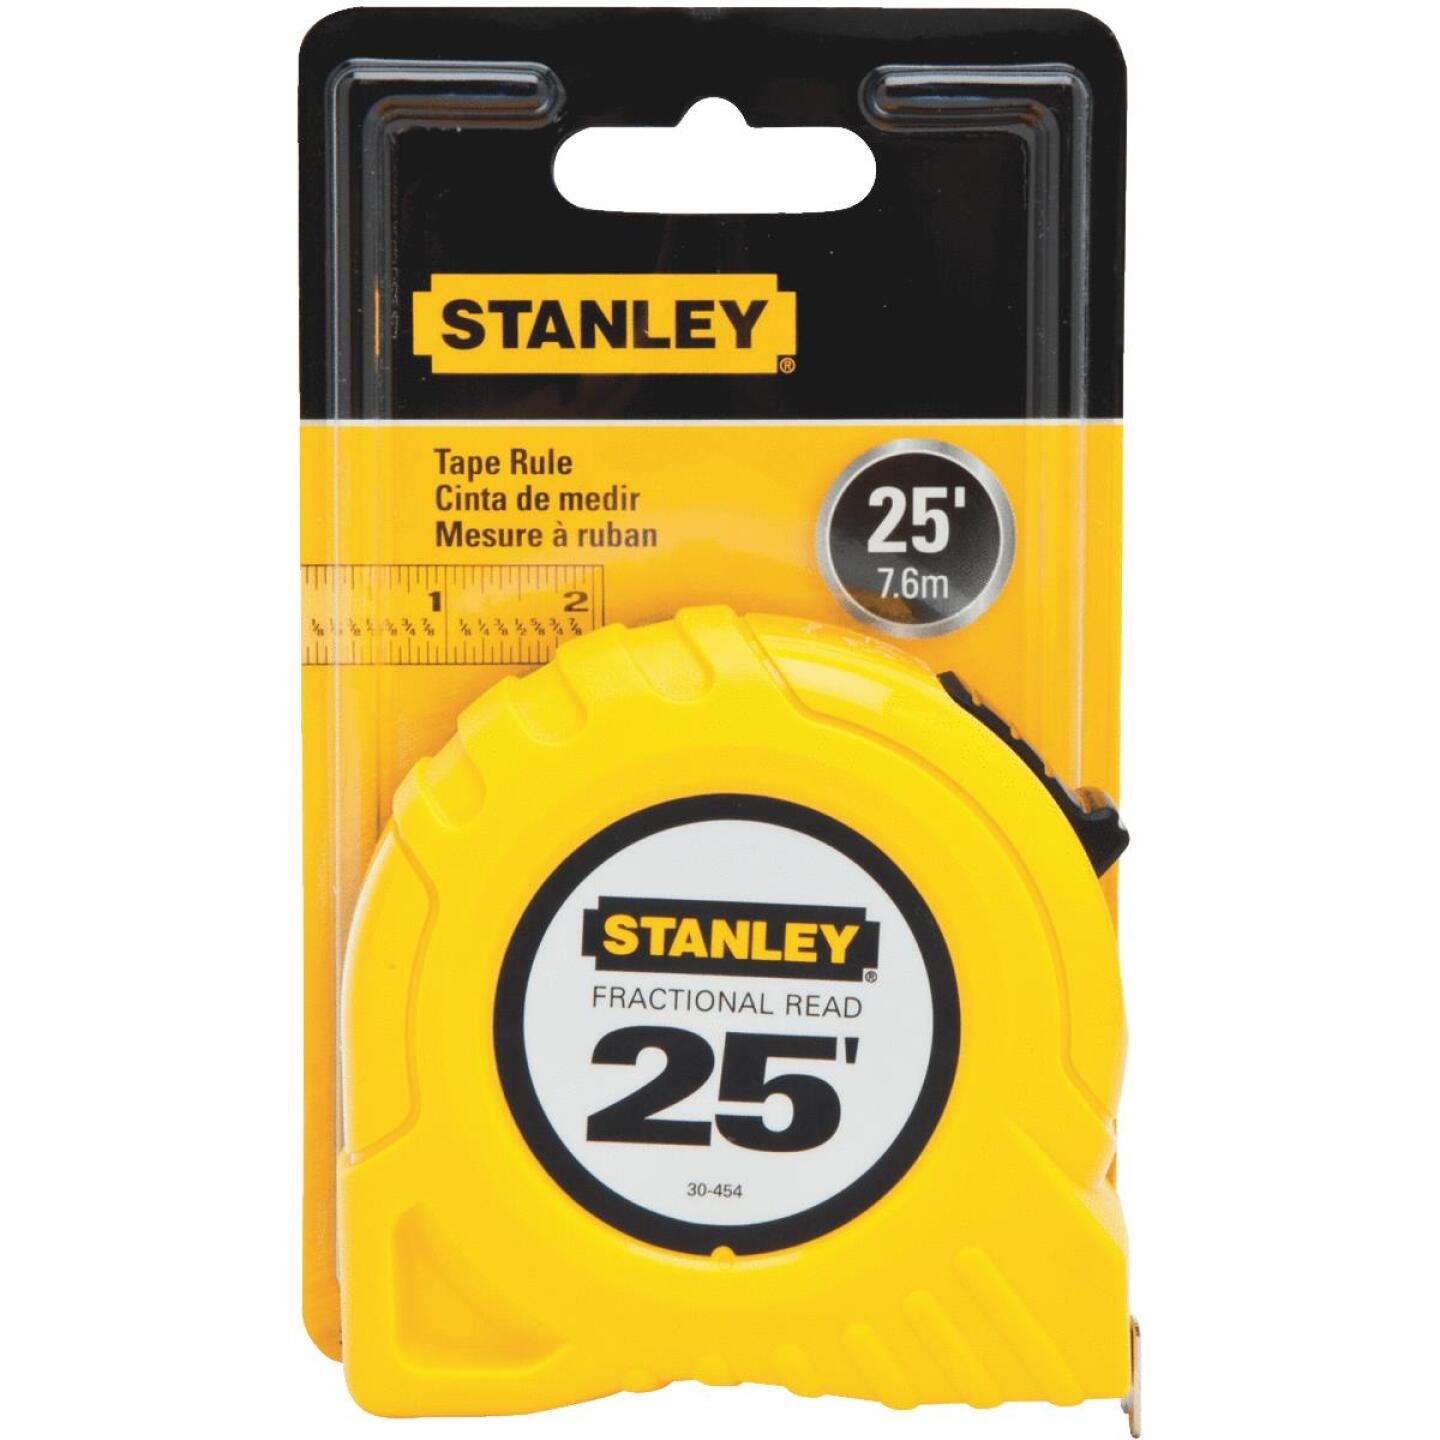 Stanley 25 Ft. Fractional Tape Measure Image 2